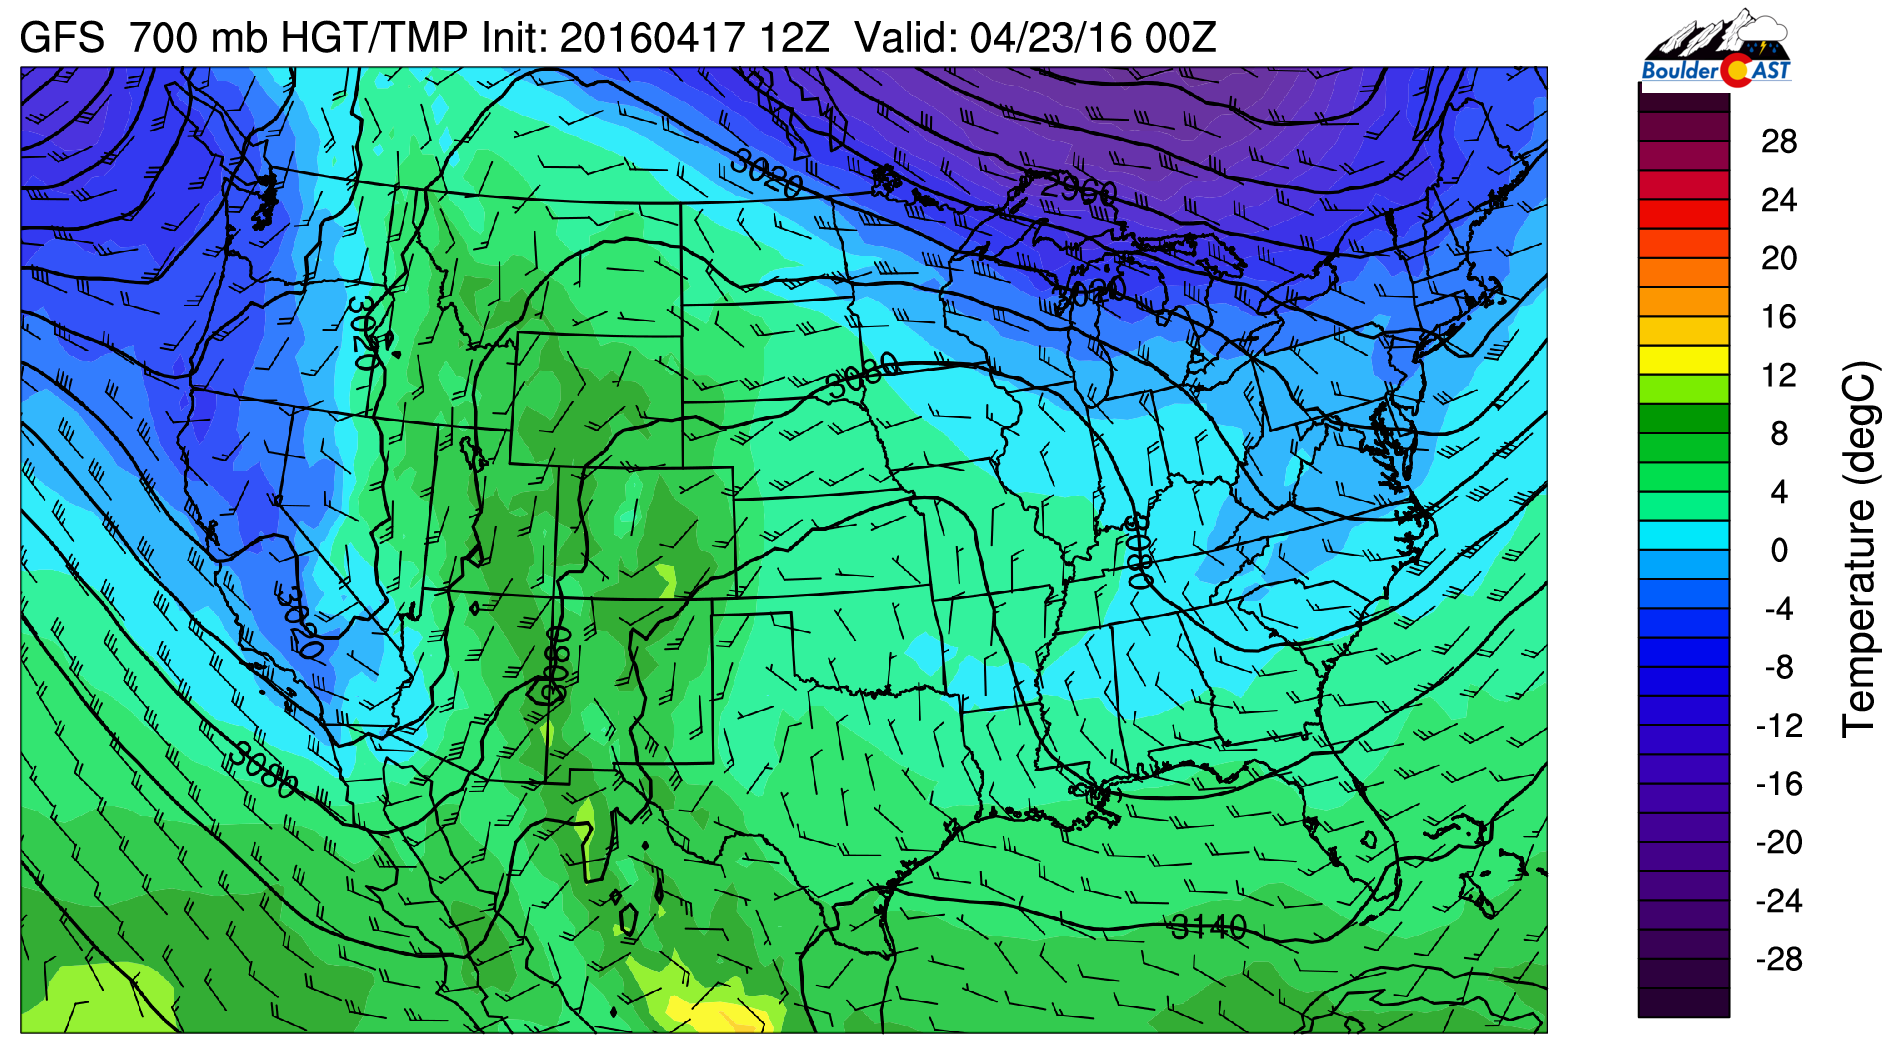 GFS 700 mb temperatures for Friday